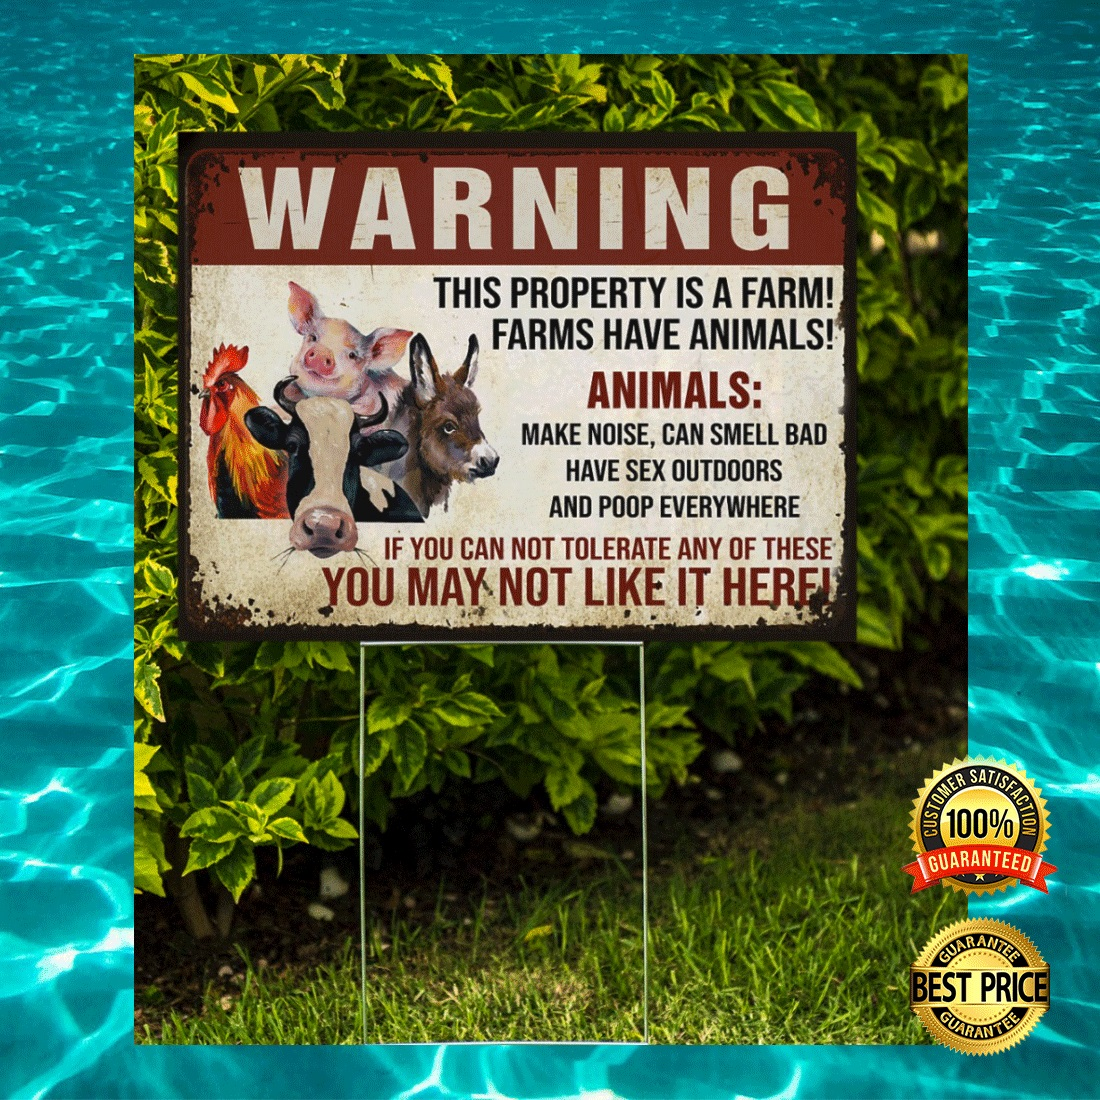 WARNING THIS PROPERTY IS A FARM FARMS HAVE ANIMALS YARN SIGN 7